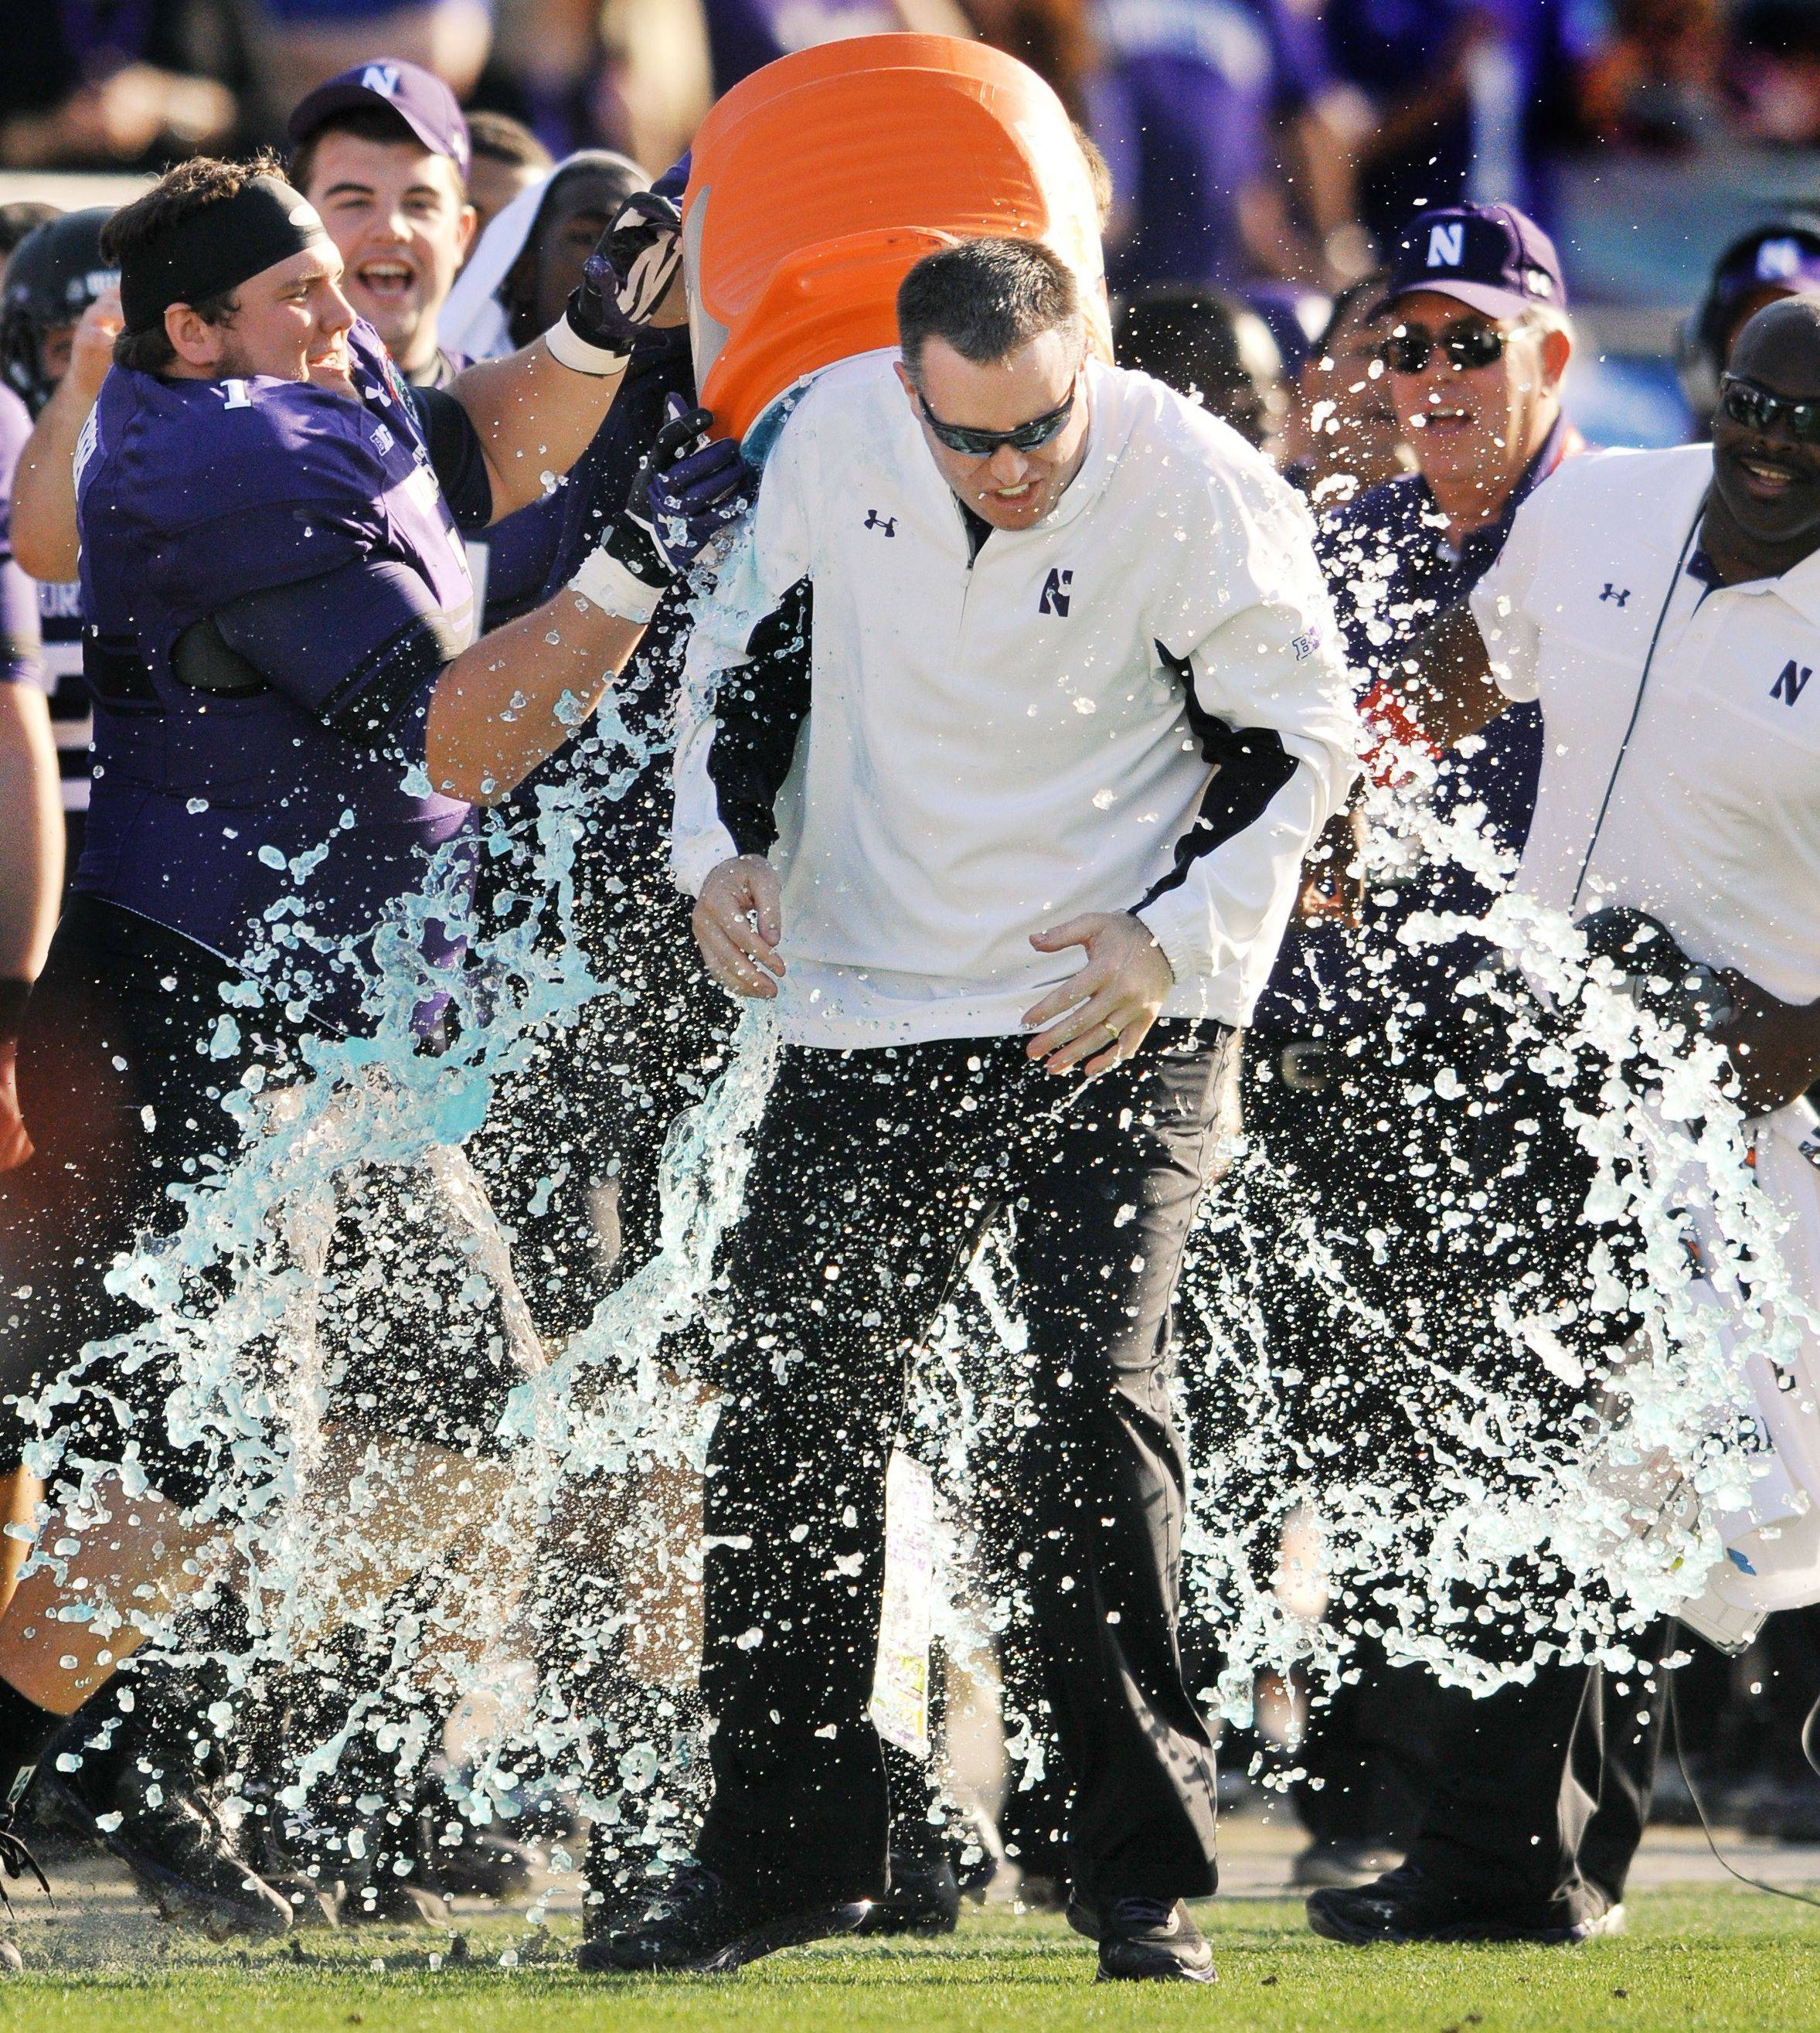 Northwestern coach Pat Fitzgerald is doused in the closing minute of the Wildcats' Gator Bowl victory over Mississippi State, the first bowl win for NU in 64 years.